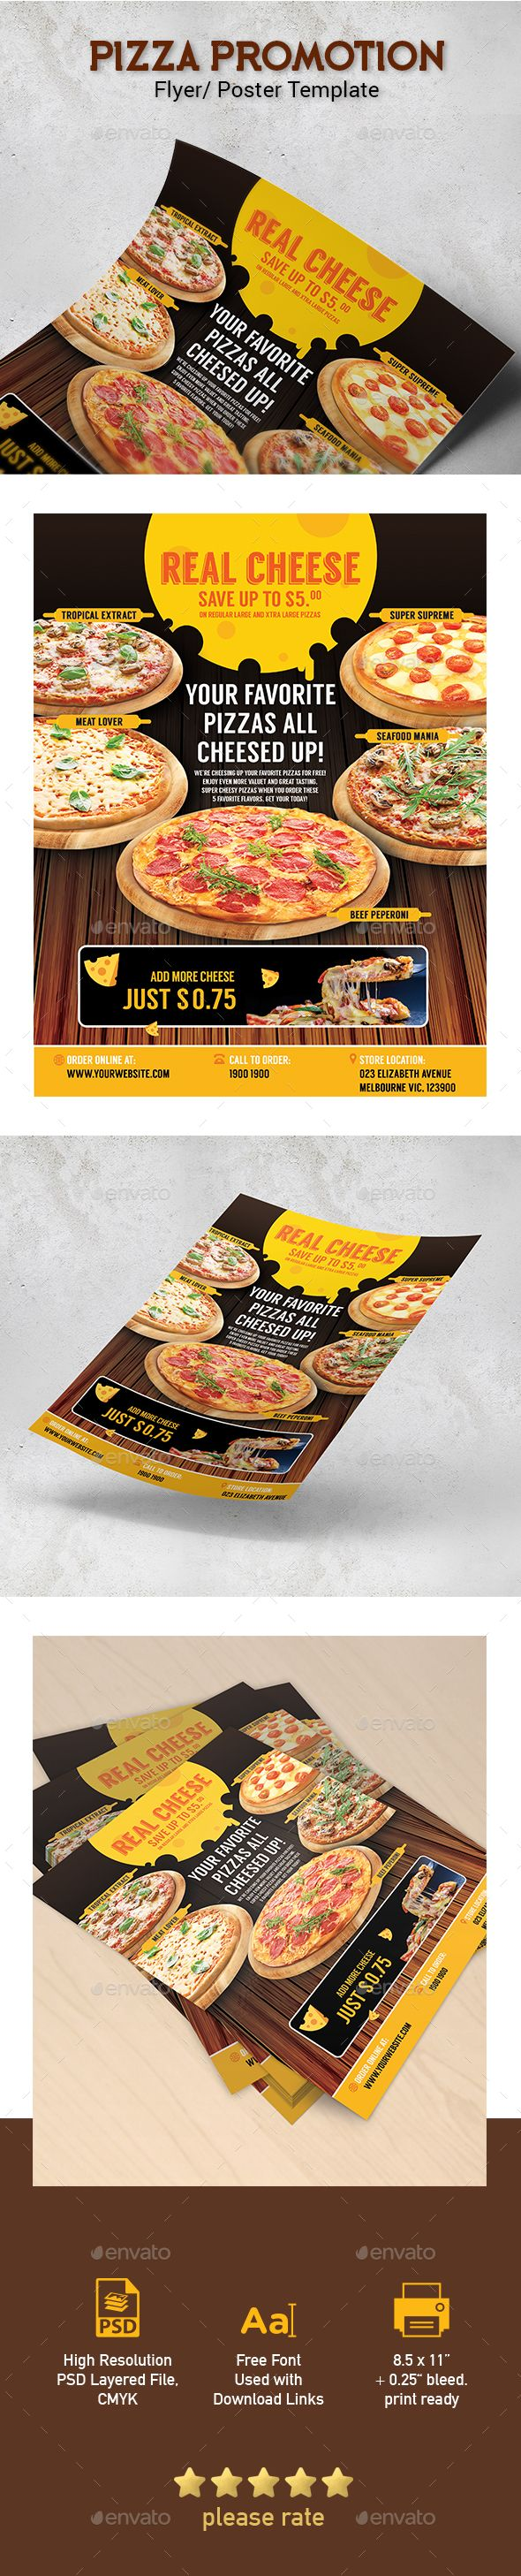 pizza menu restaurant promotion template for poster flyer